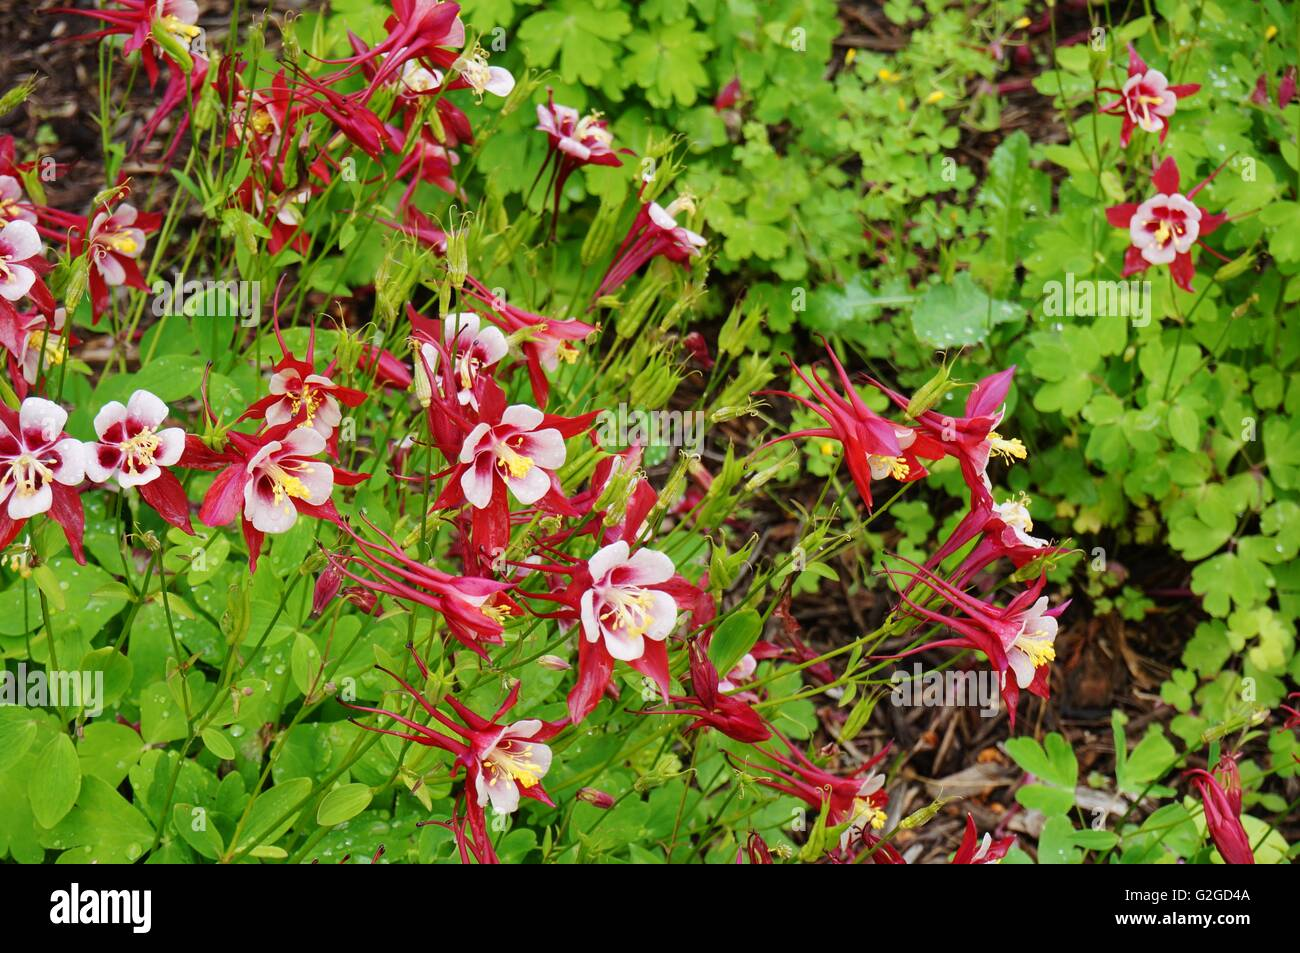 Red columbine stock photos red columbine stock images page 3 alamy red and white origami columbine flower aquilegia stock image izmirmasajfo